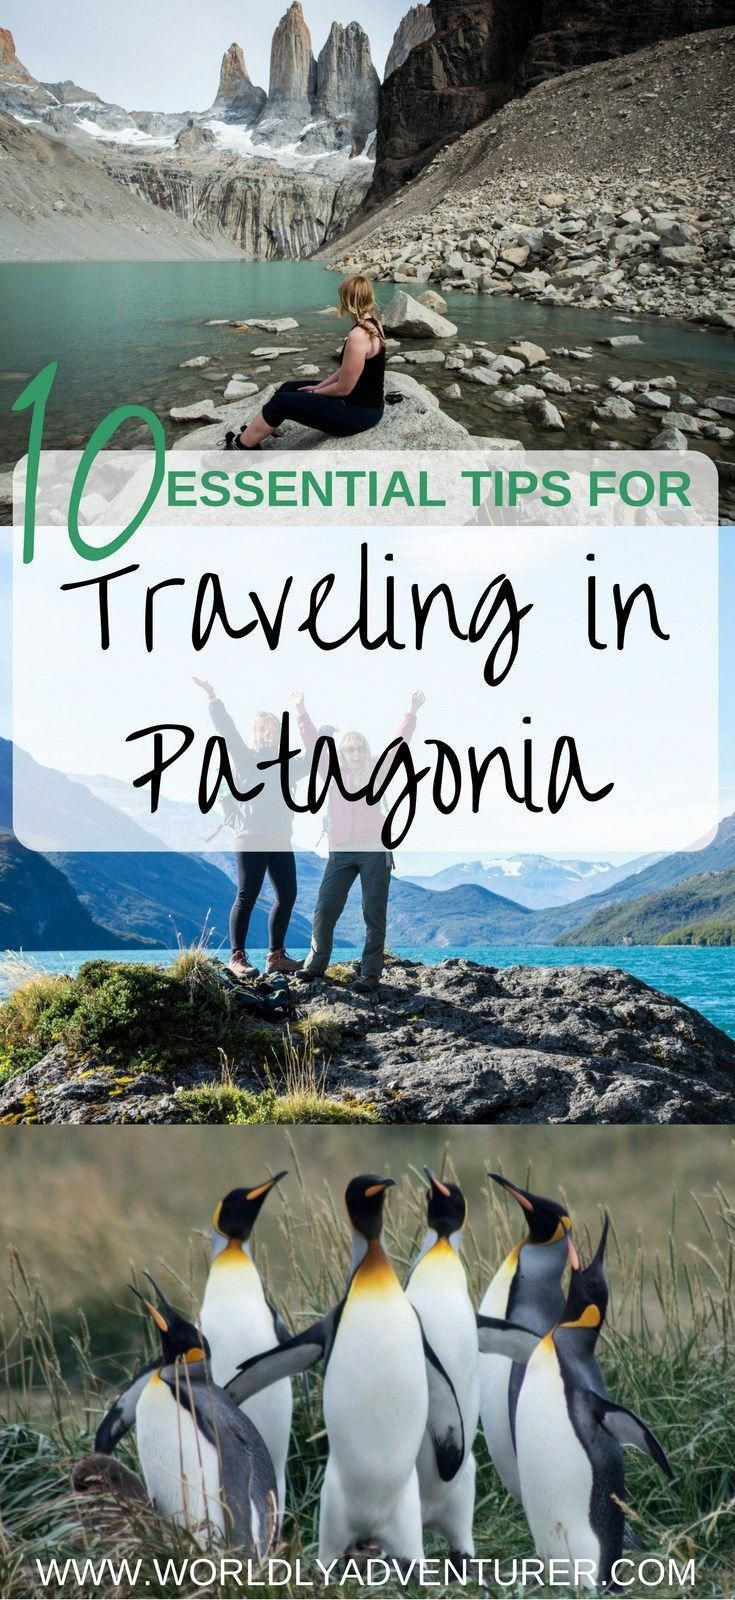 The Complete & Comprehensive Travel to Patagonia Guide - Worldly Adventurer